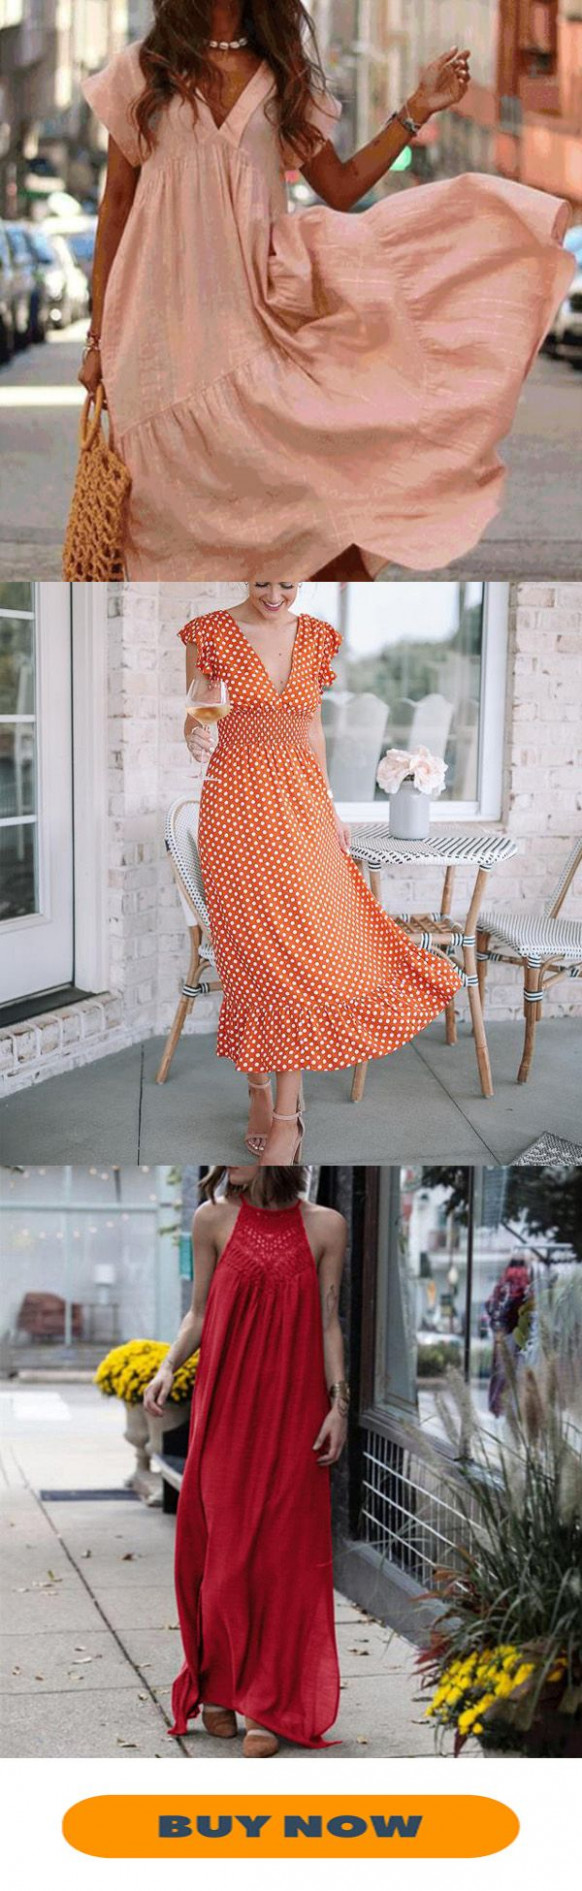 loose solid color dress fashion, daily dress, clothes floridays kleider